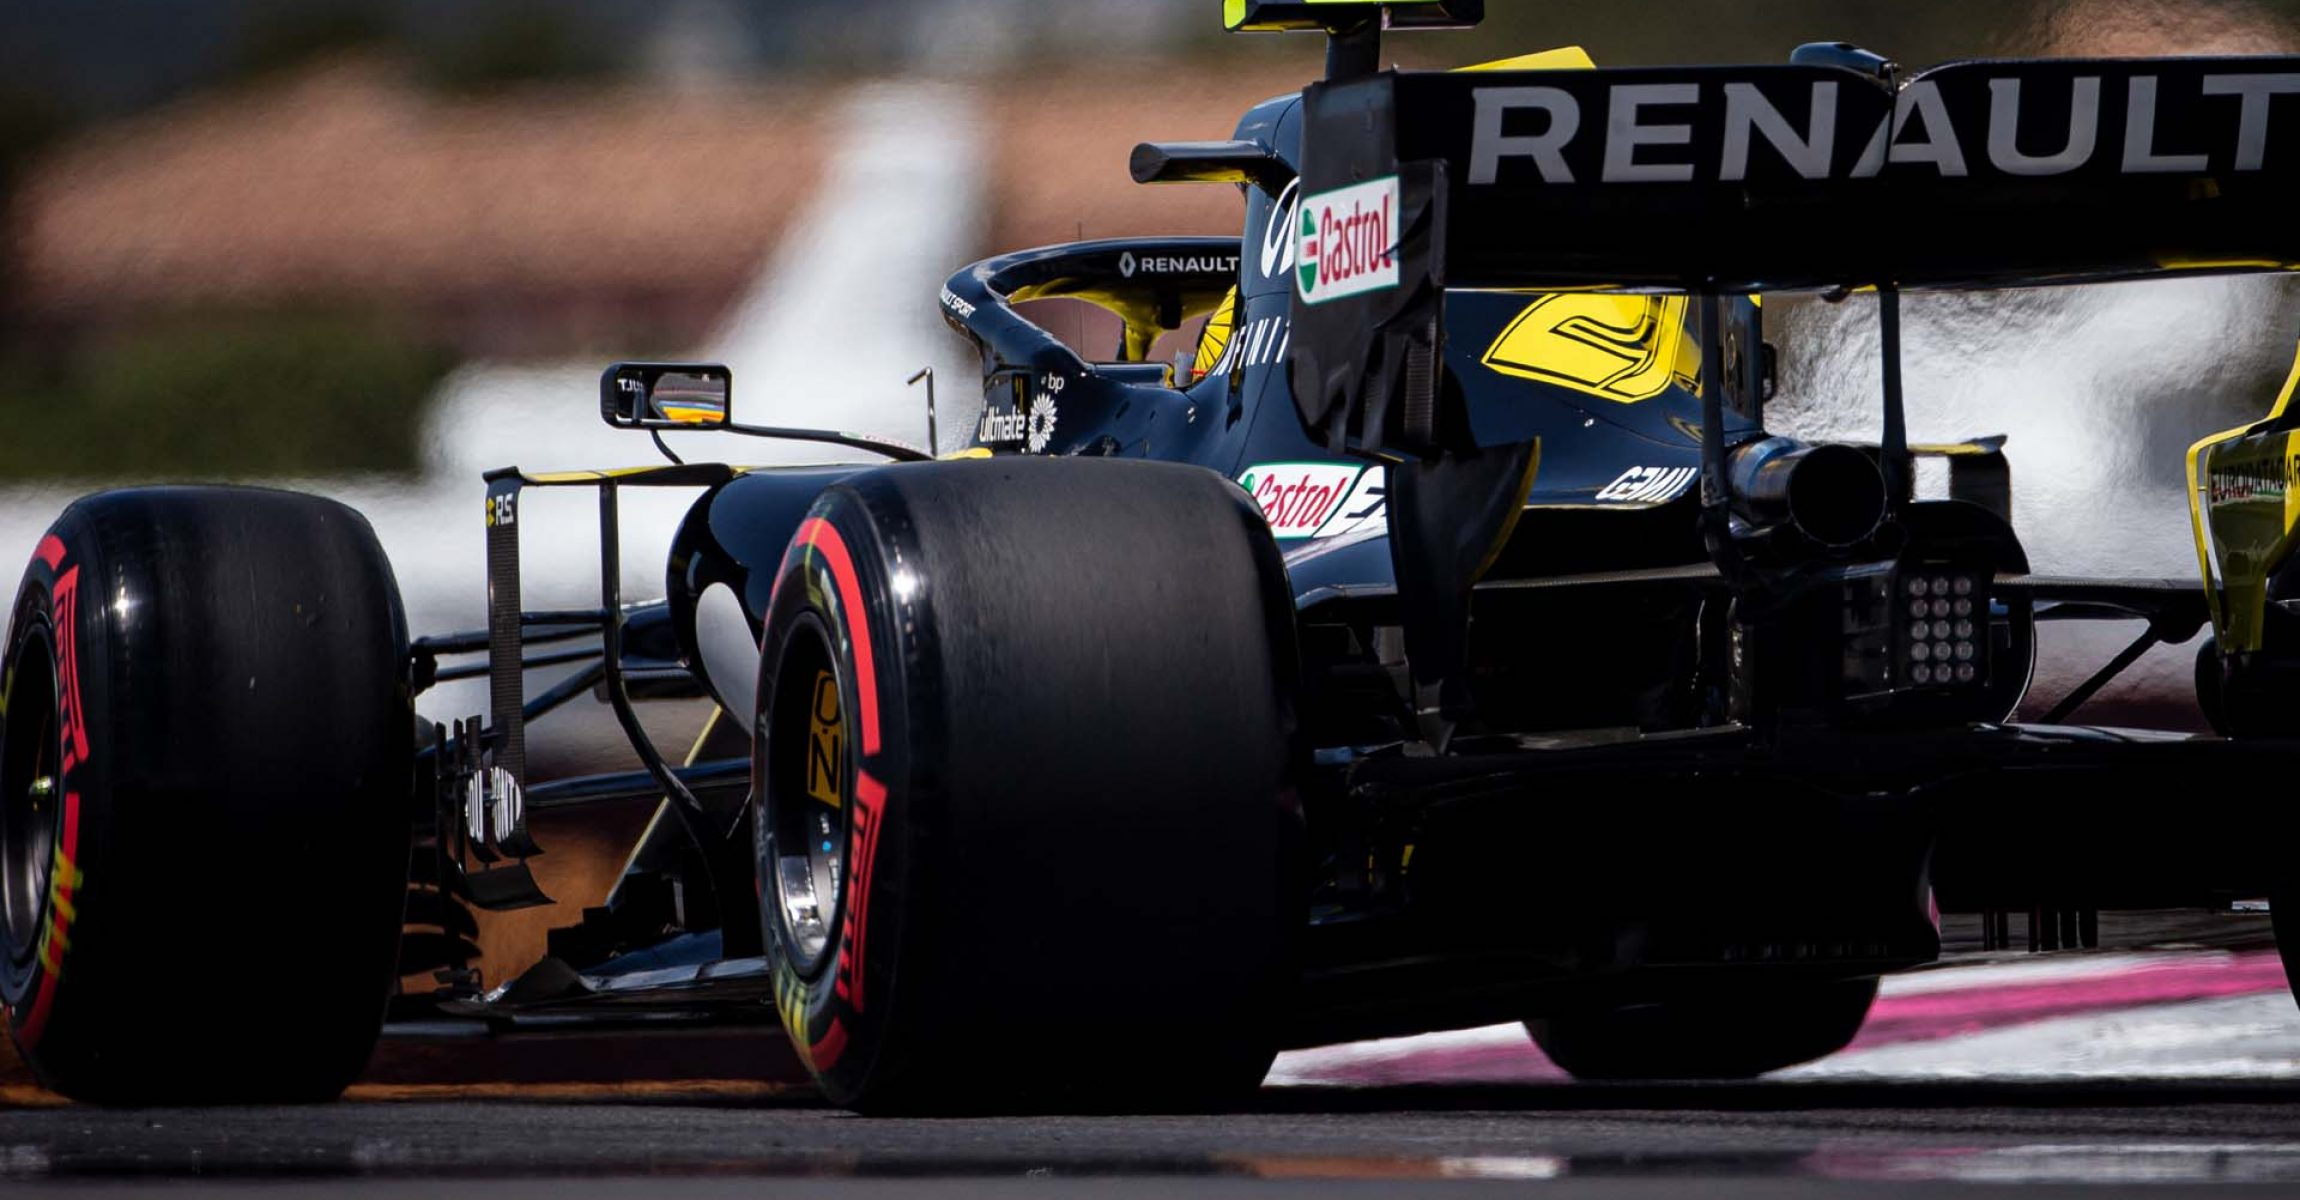 Nico Hulkenberg (GER) Renault F1 Team RS19. French Grand Prix, Saturday 22nd June 2019. Paul Ricard, France. Hülkenberg